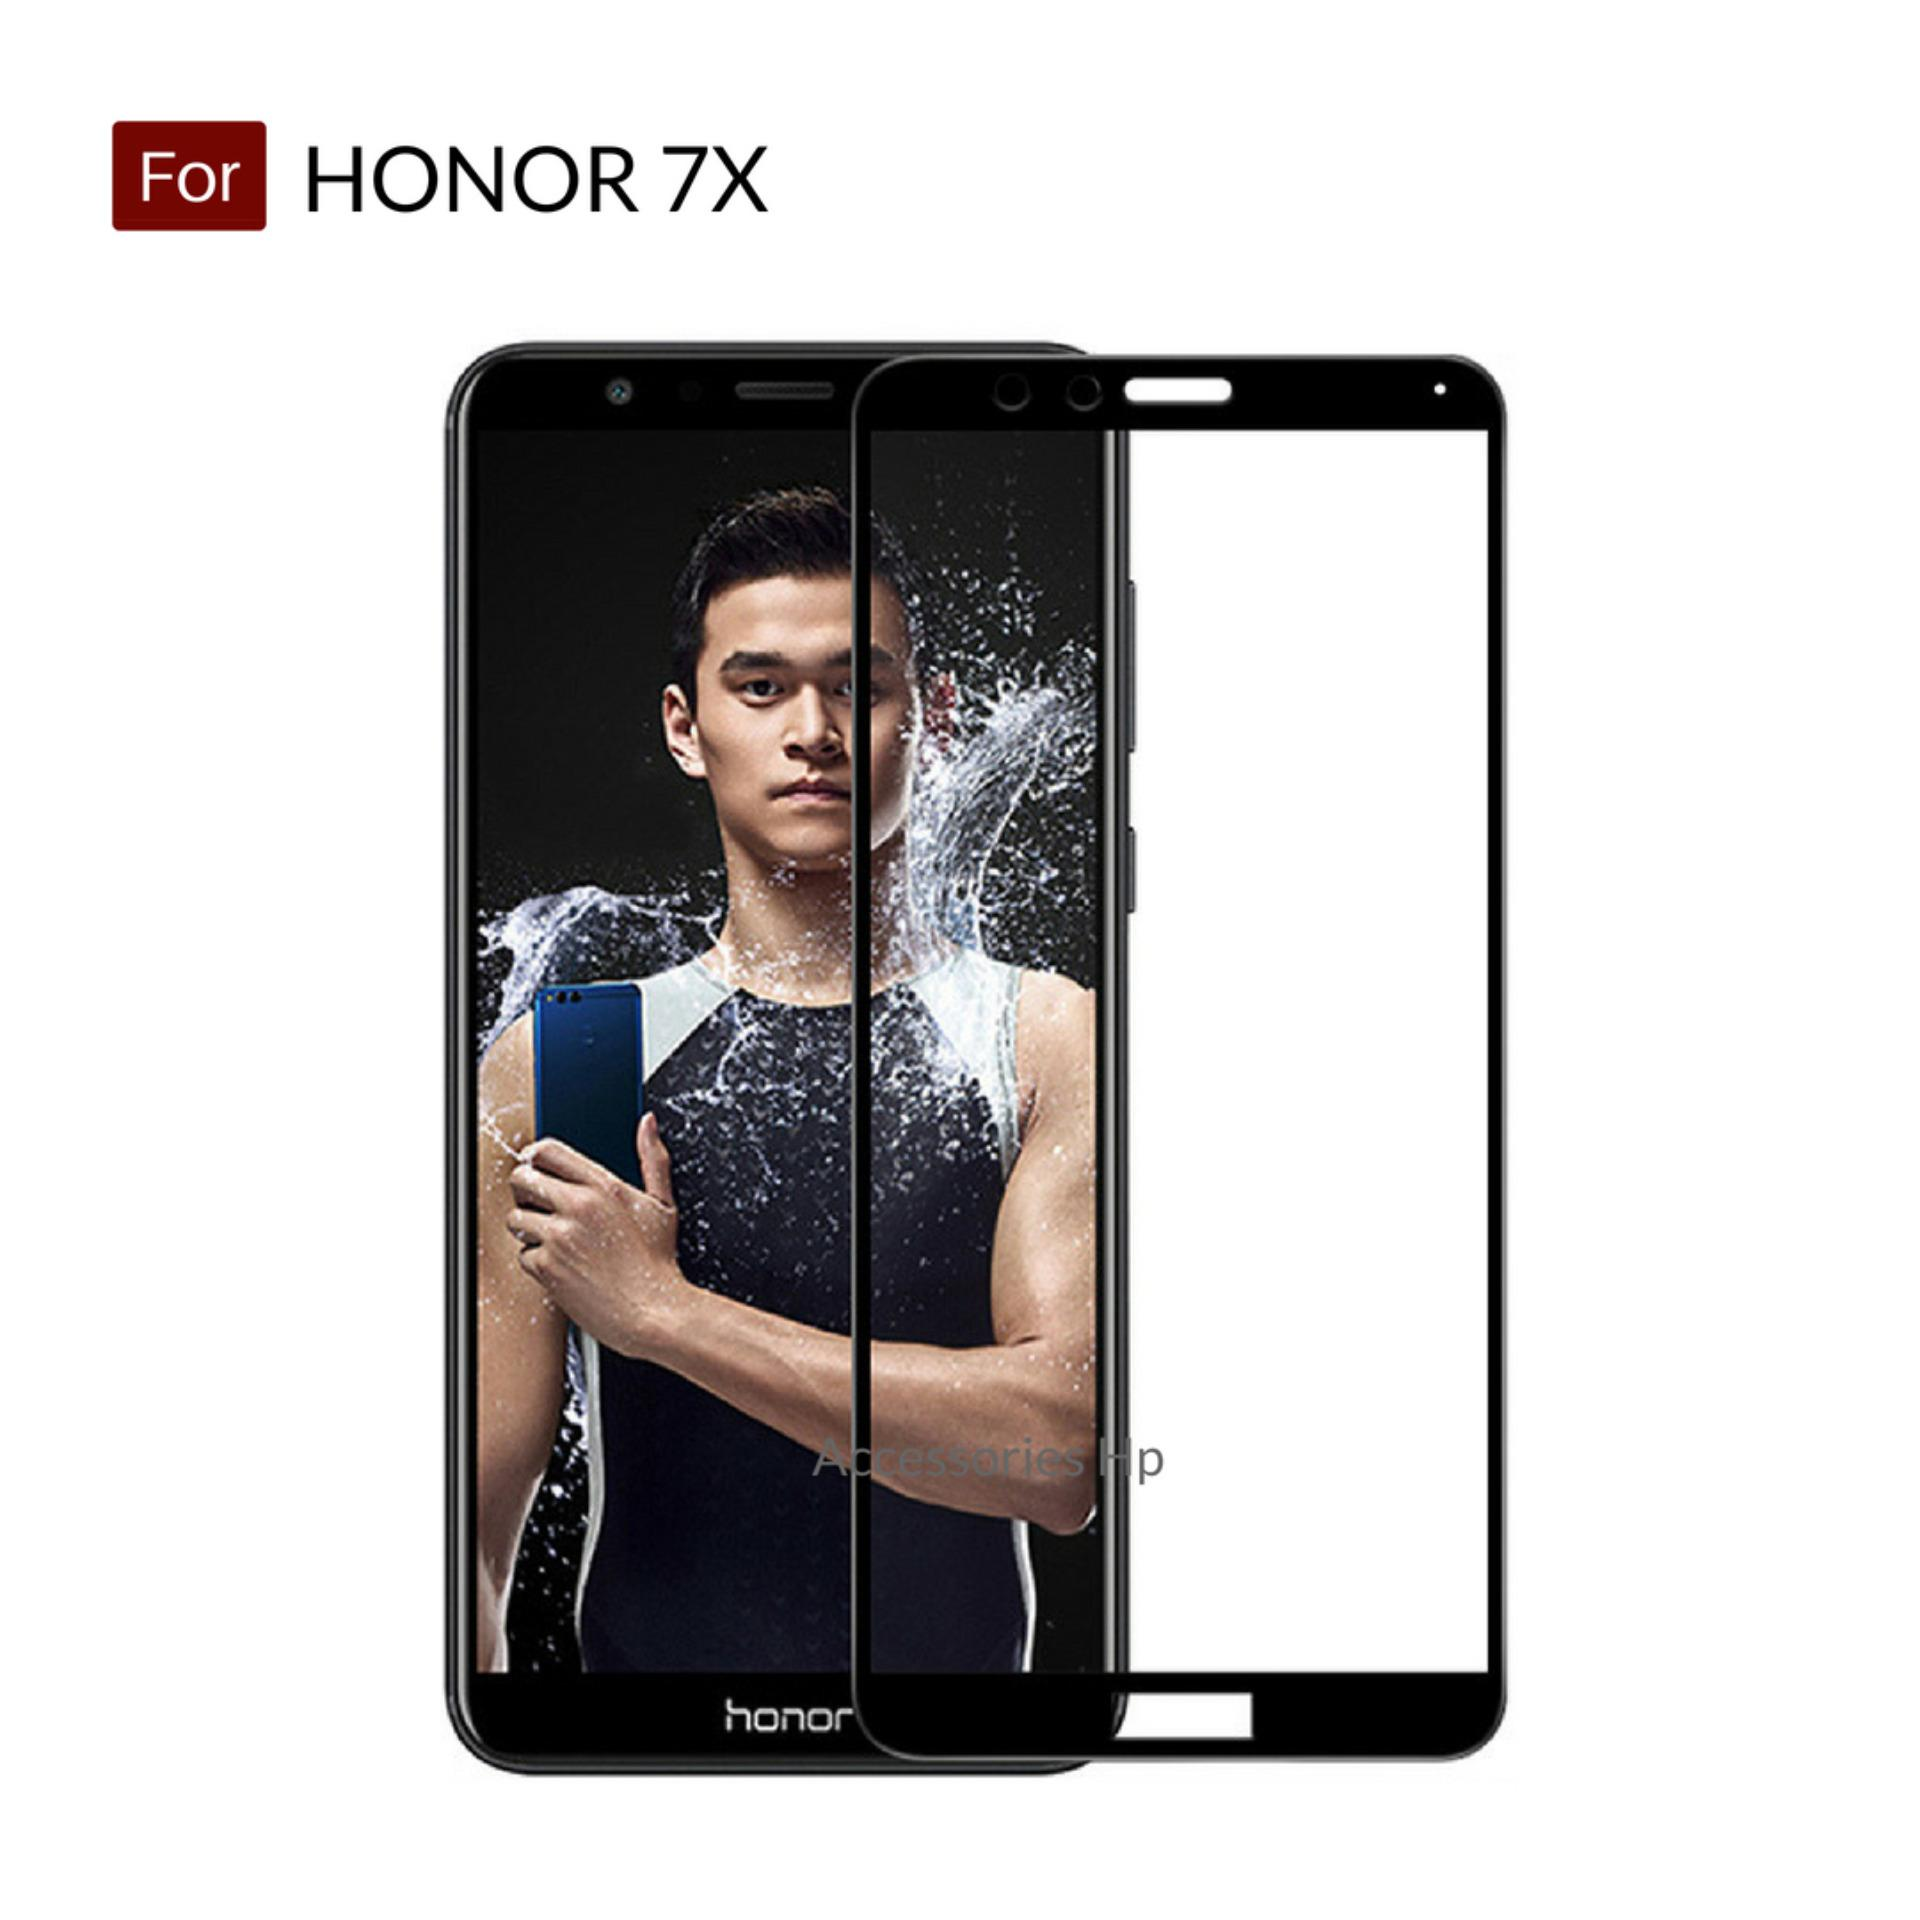 Accessories Hp Full Cover Tempered Glass Warna Screen Protector for Huawei Honor 7X - Black